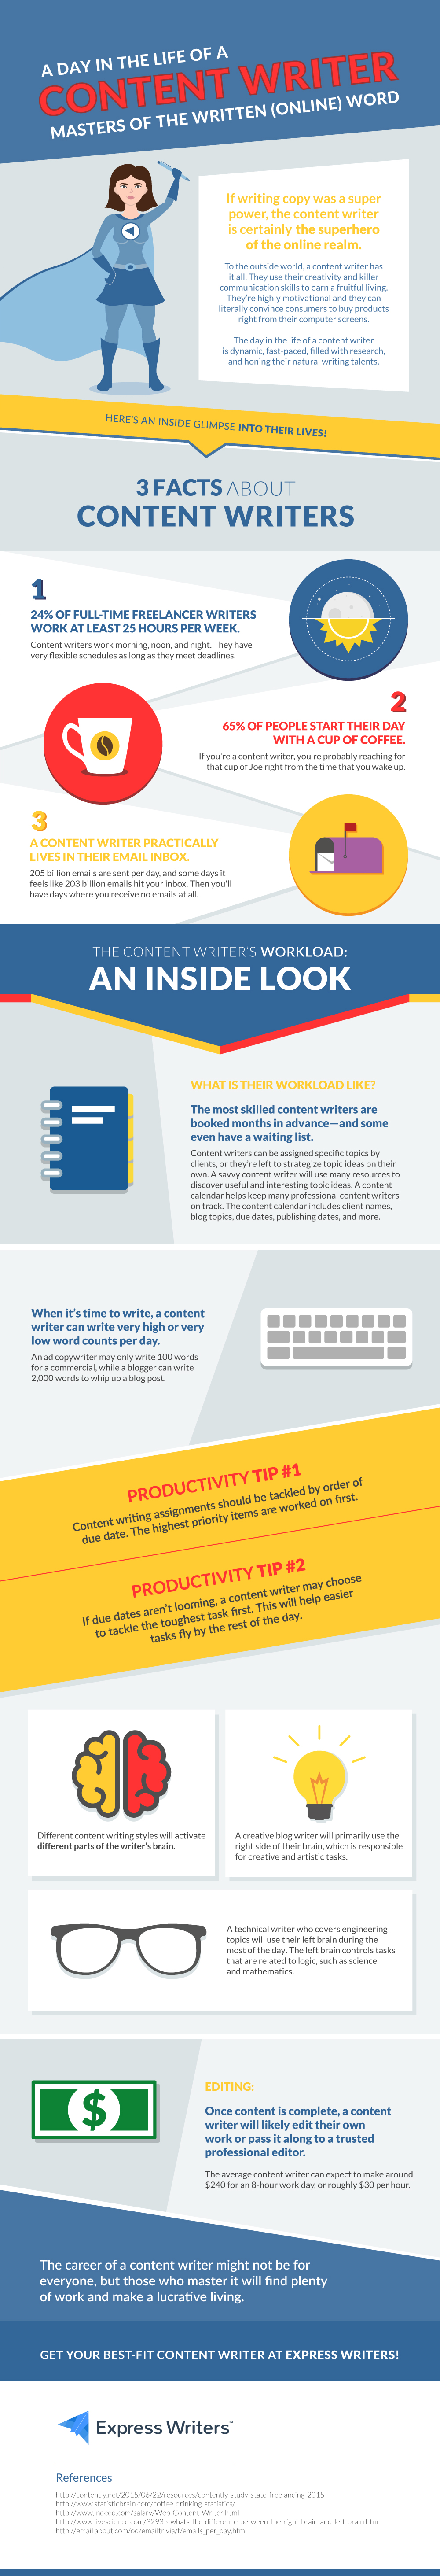 a-day-in-the-life-of-a-content-writer-infographic